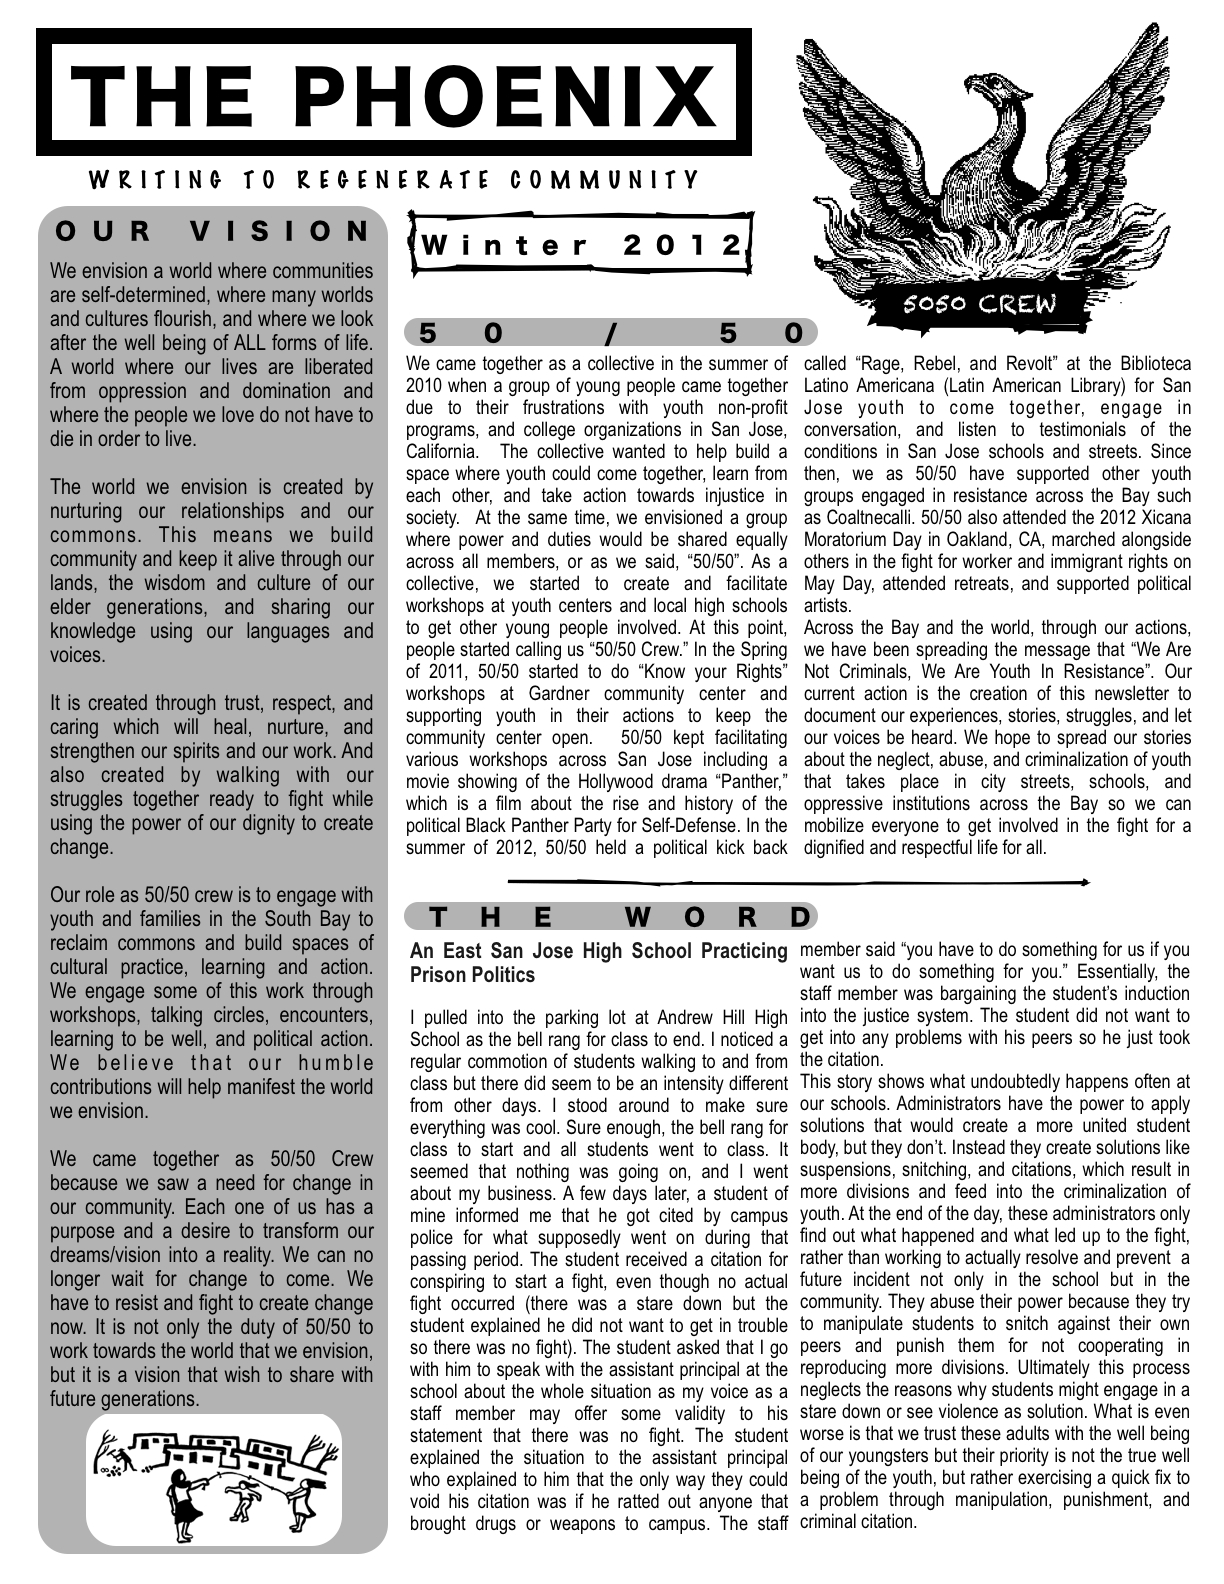 Click the image above to access the pdf of The Phoenix.